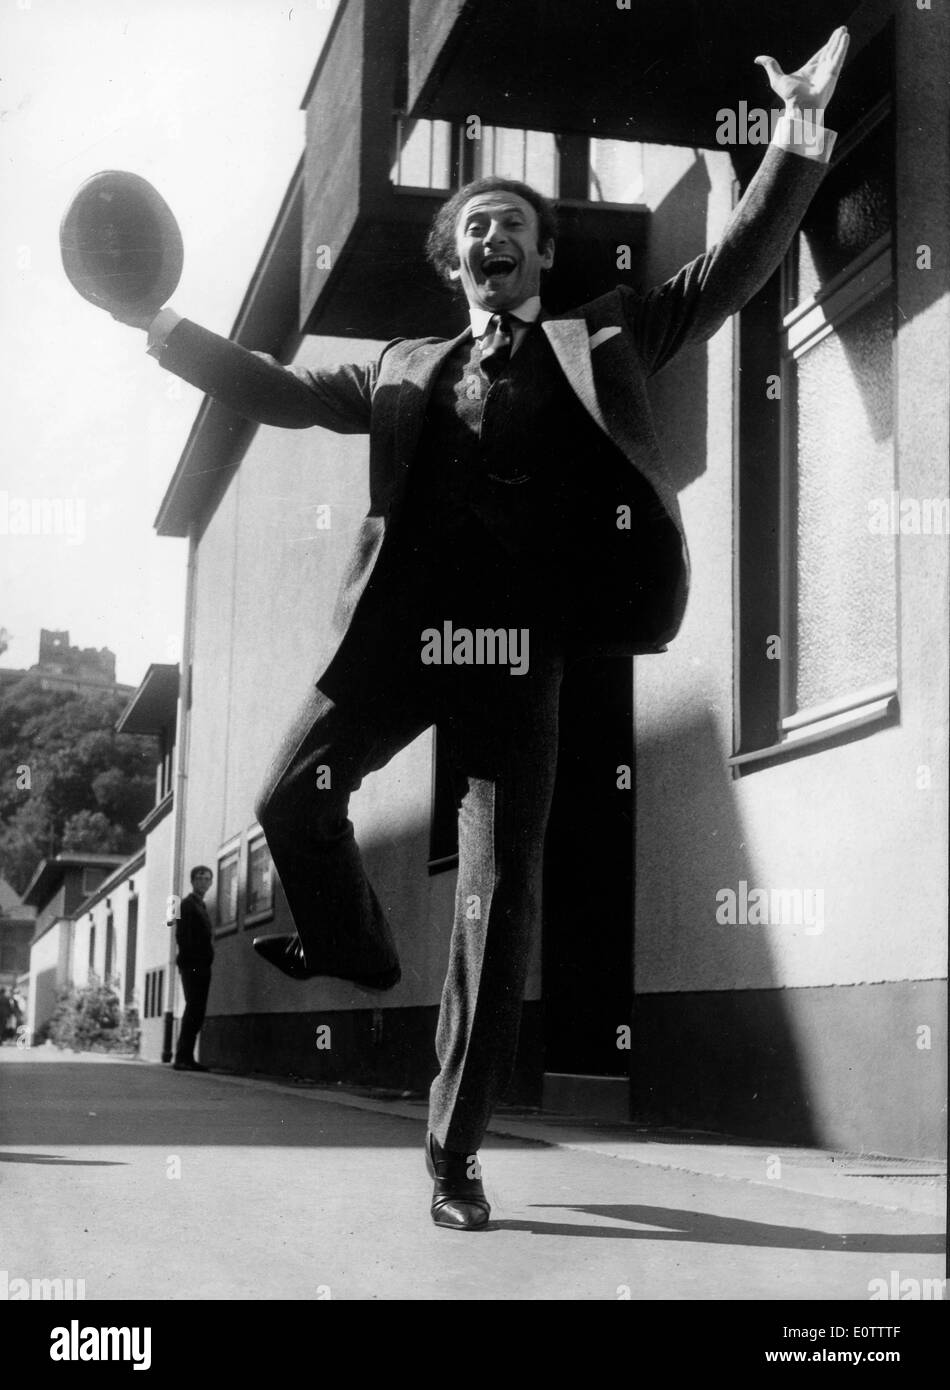 French mime Marcel Marceau excited on the streets of Paris - Stock Image